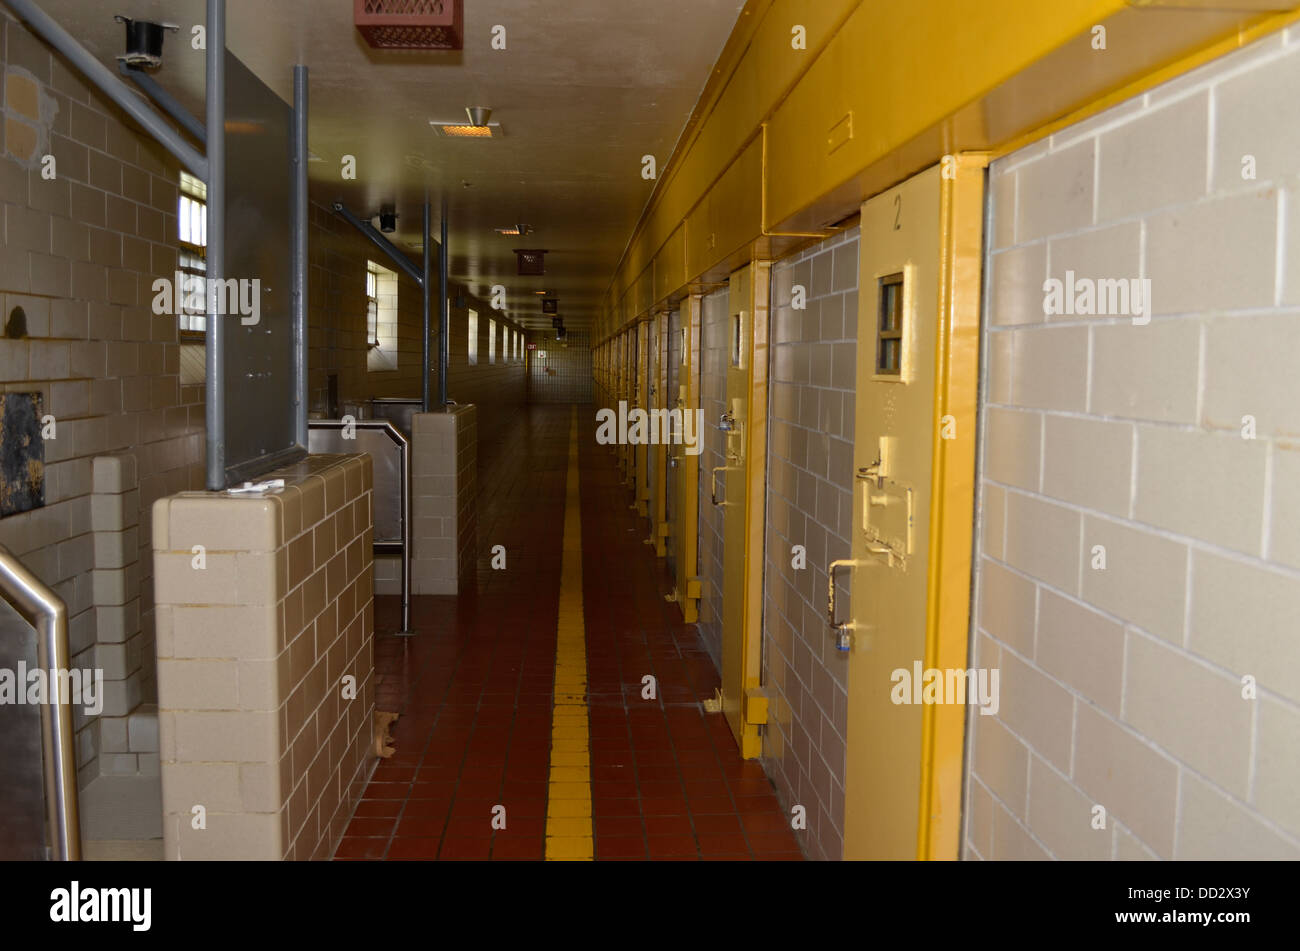 Special Management Unit at the Nebraska State Penitentiary. Inmates are held here on solitary confinement and isolation. - Stock Image